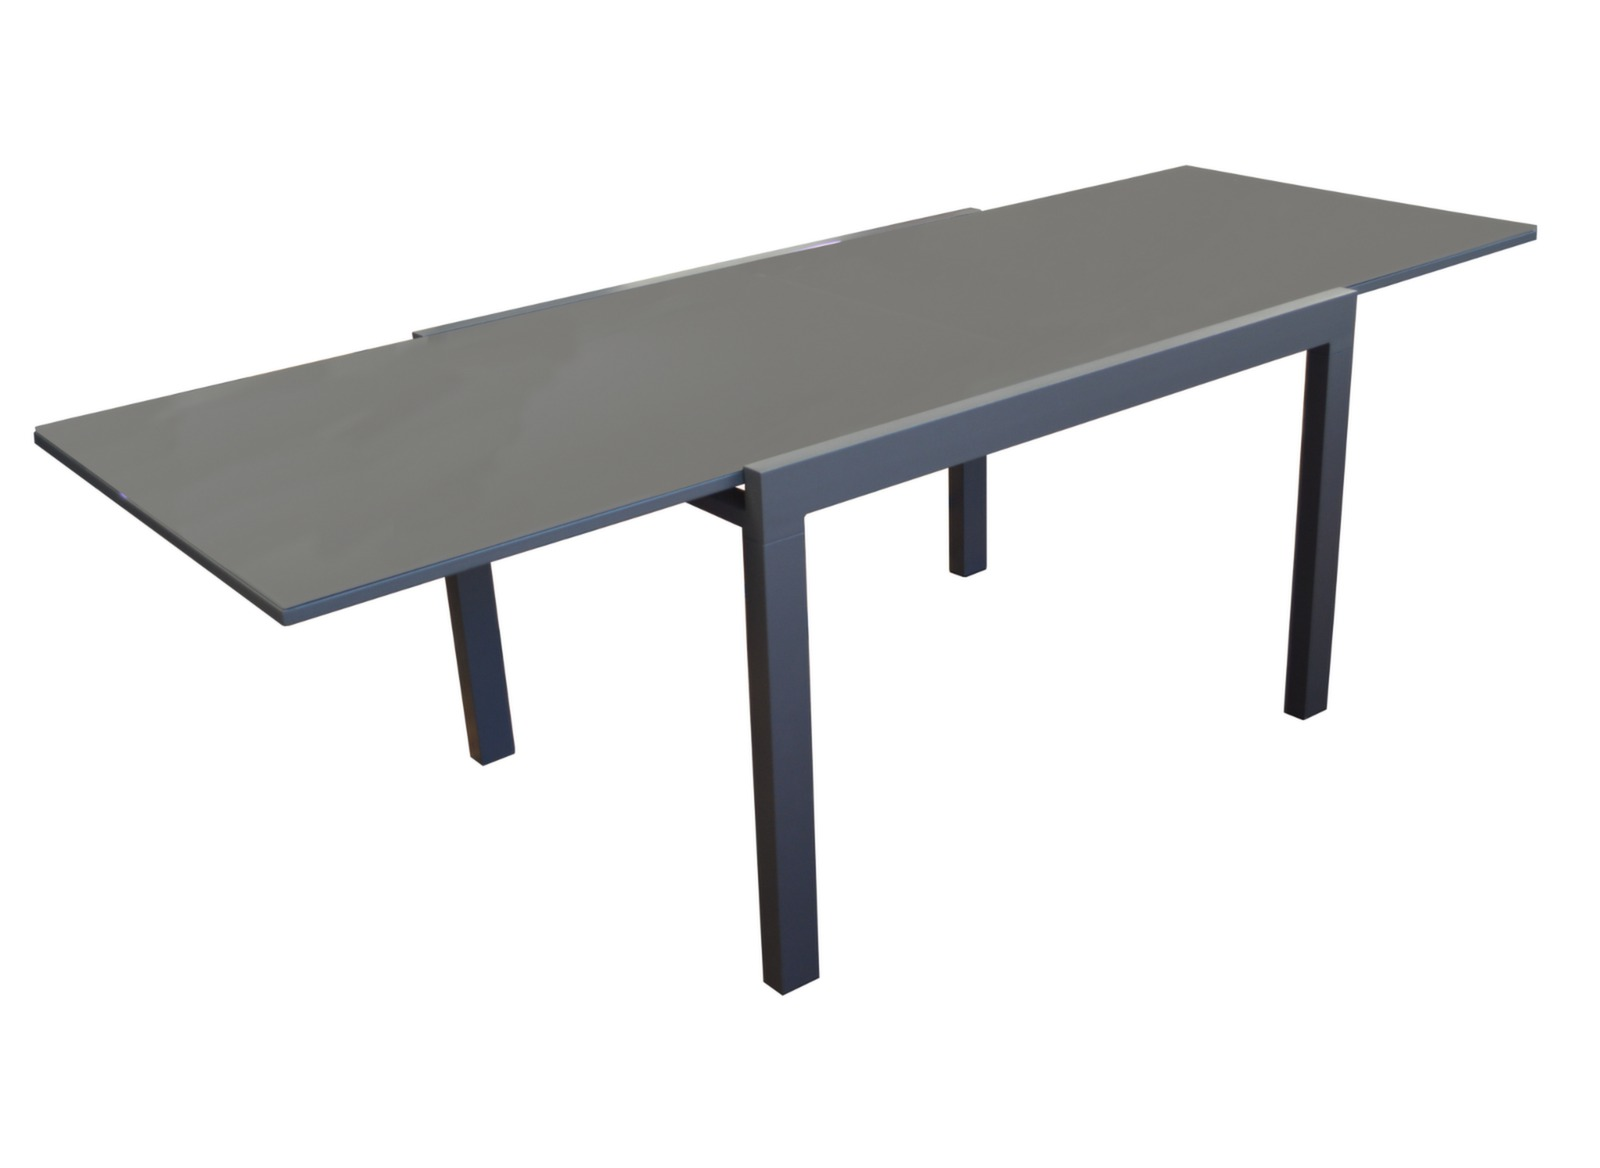 Table elise 80 160 cm table de jardin meubles de for Table largeur 70 cm avec rallonge